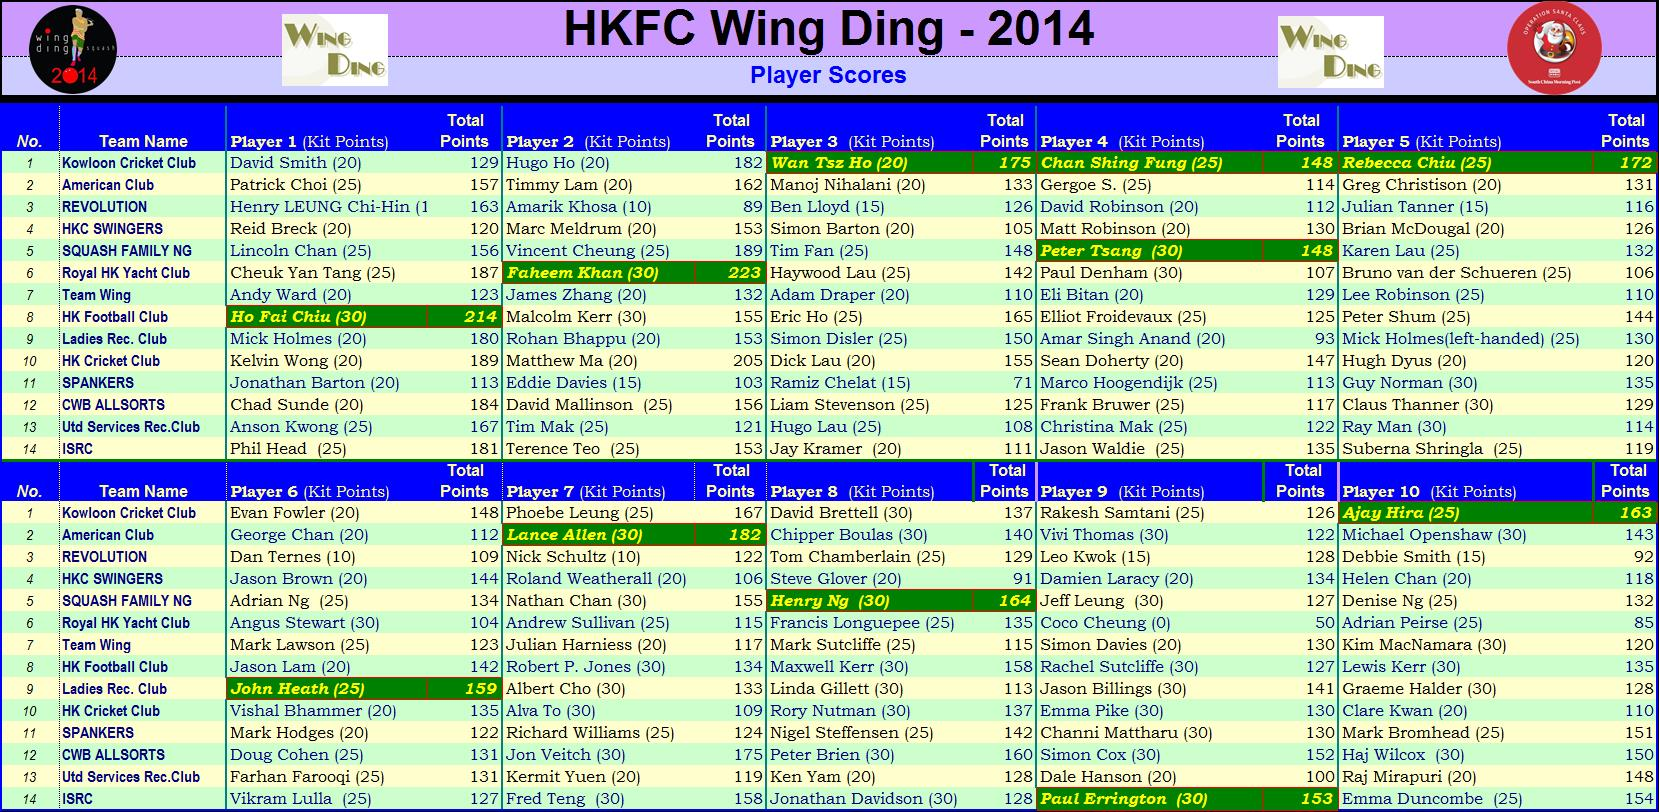 Wing Ding Players Scores